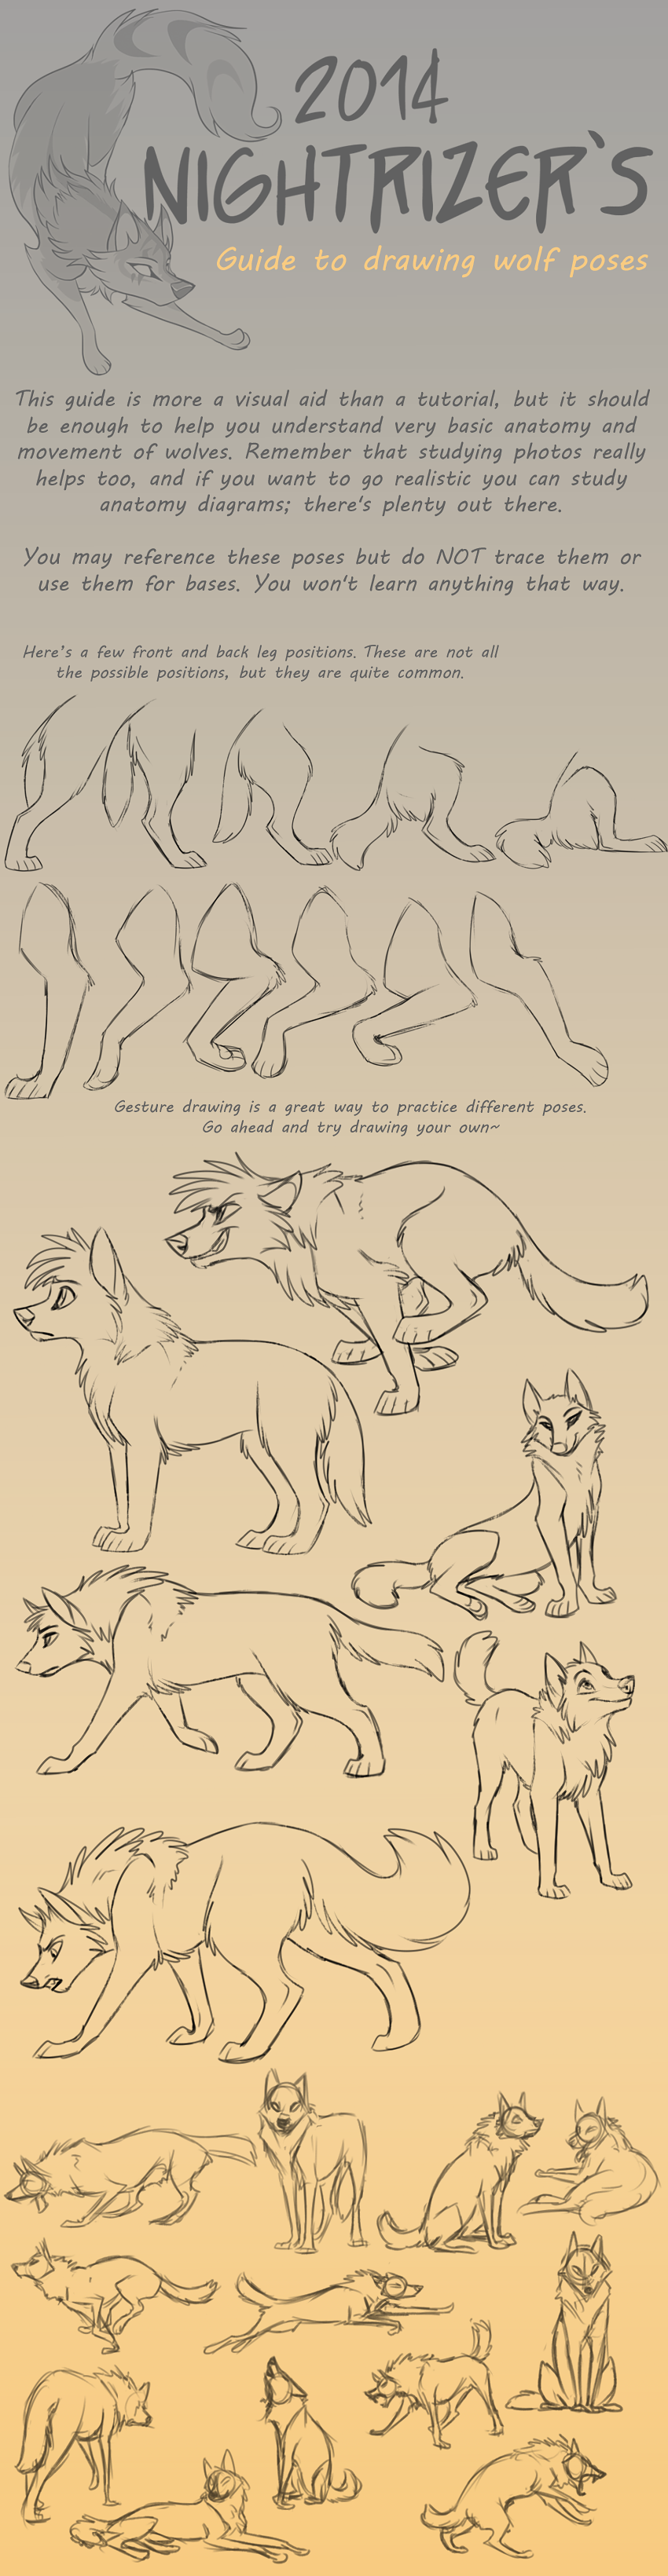 Guide To Drawing Wolf Poses By Nightrizeriantart On @deviantart